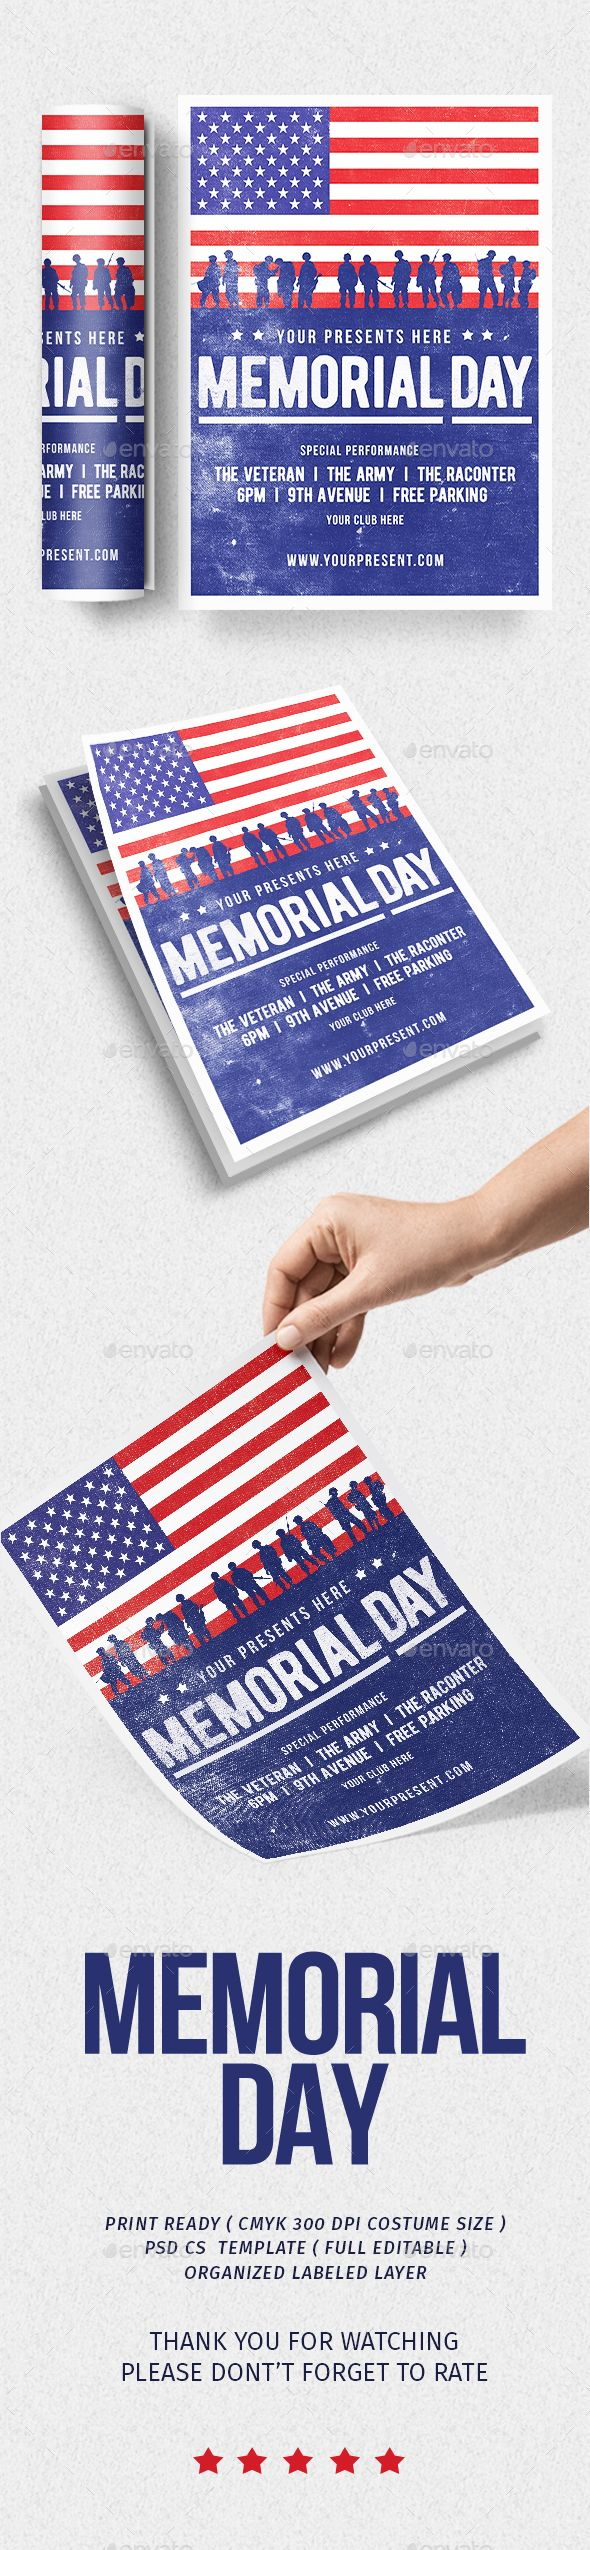 free memorial day flyer template